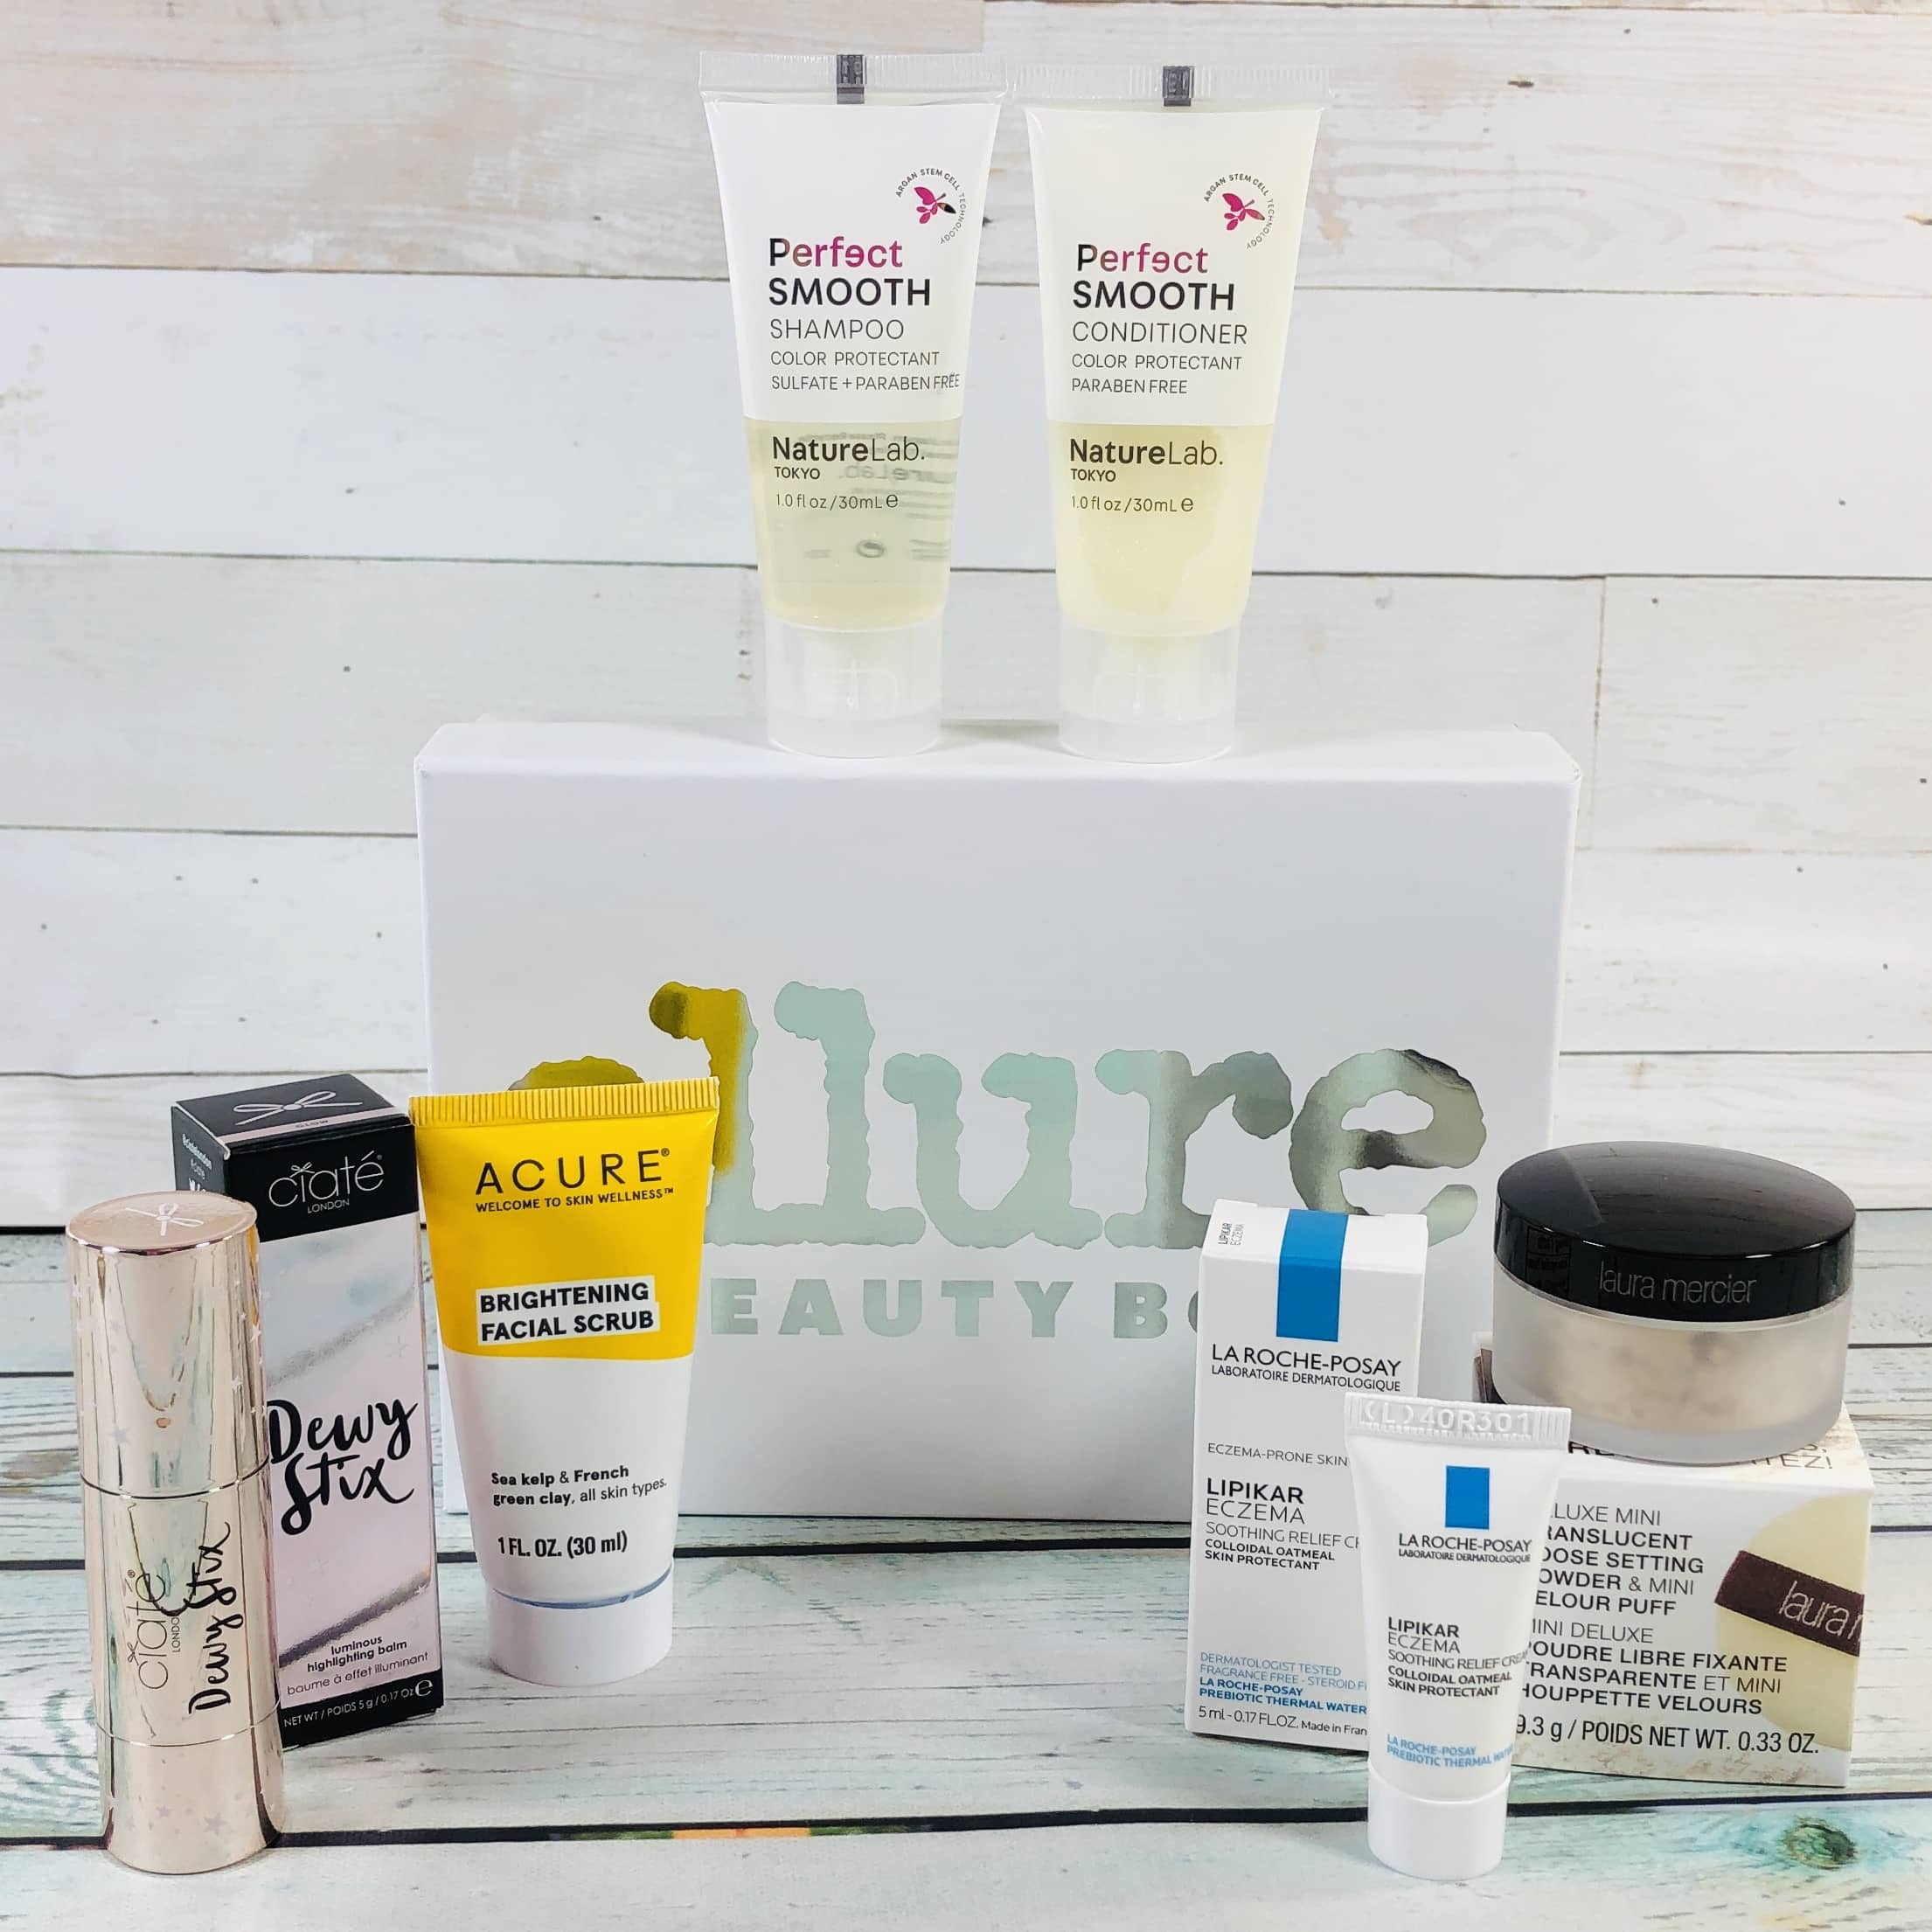 Allure Beauty Box September 2019 Subscription Box Review & Coupon